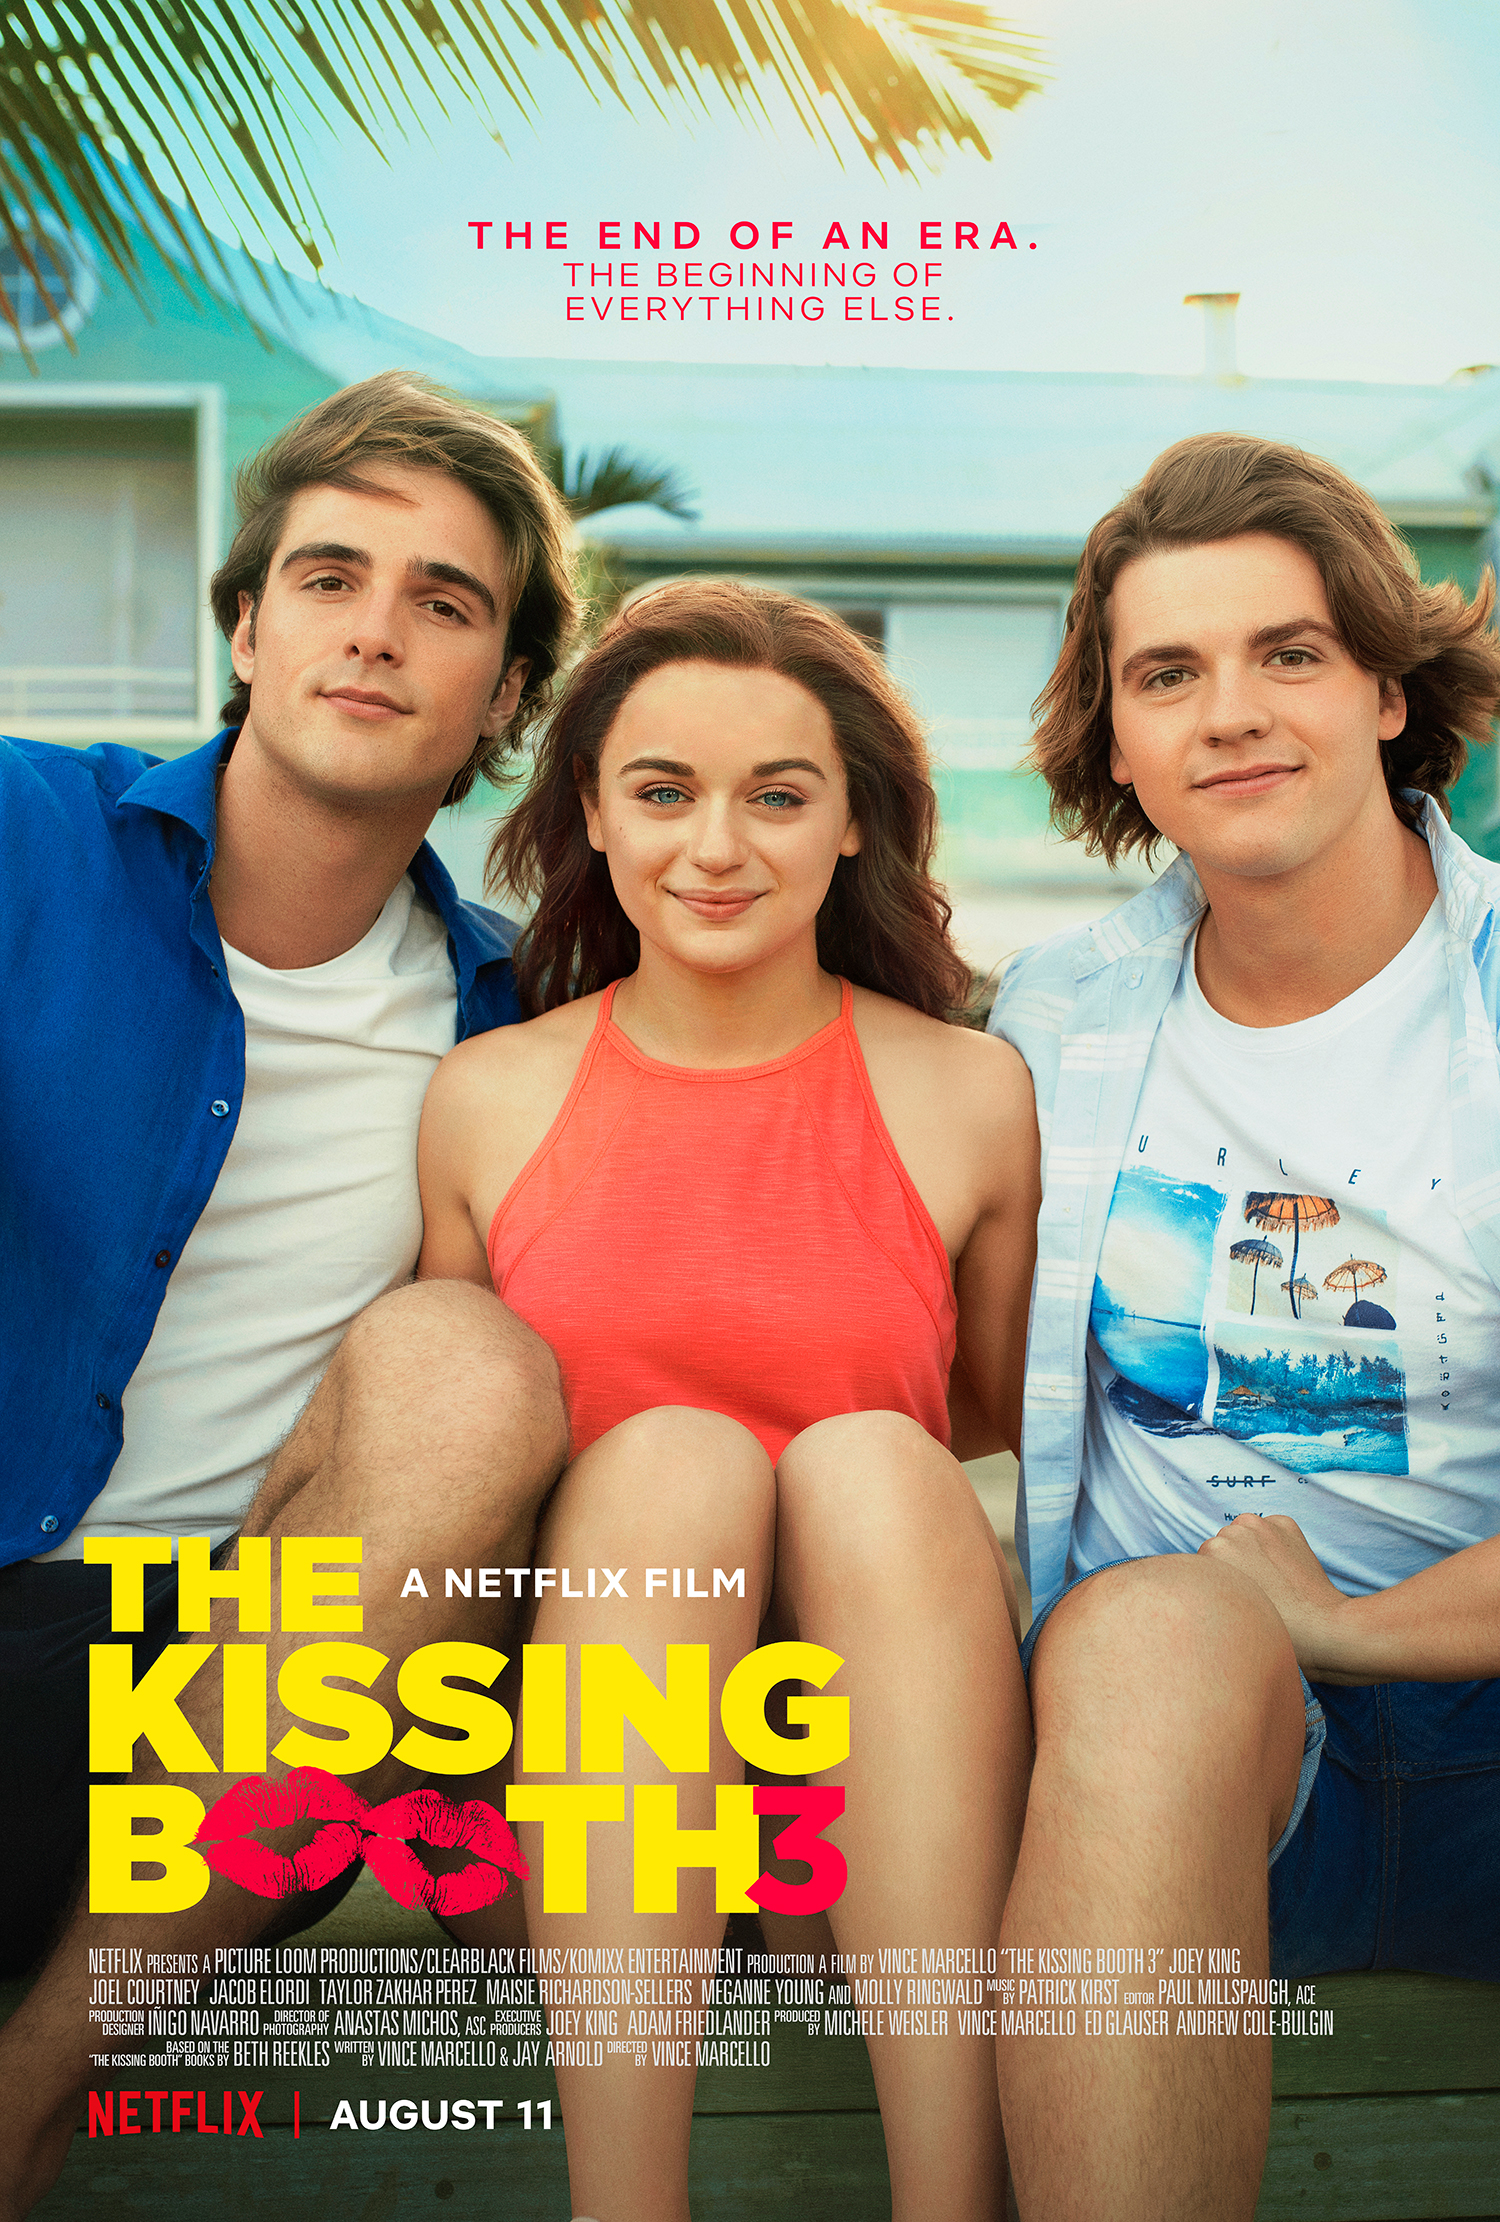 When and What to Expect from The Kissing Booth 3